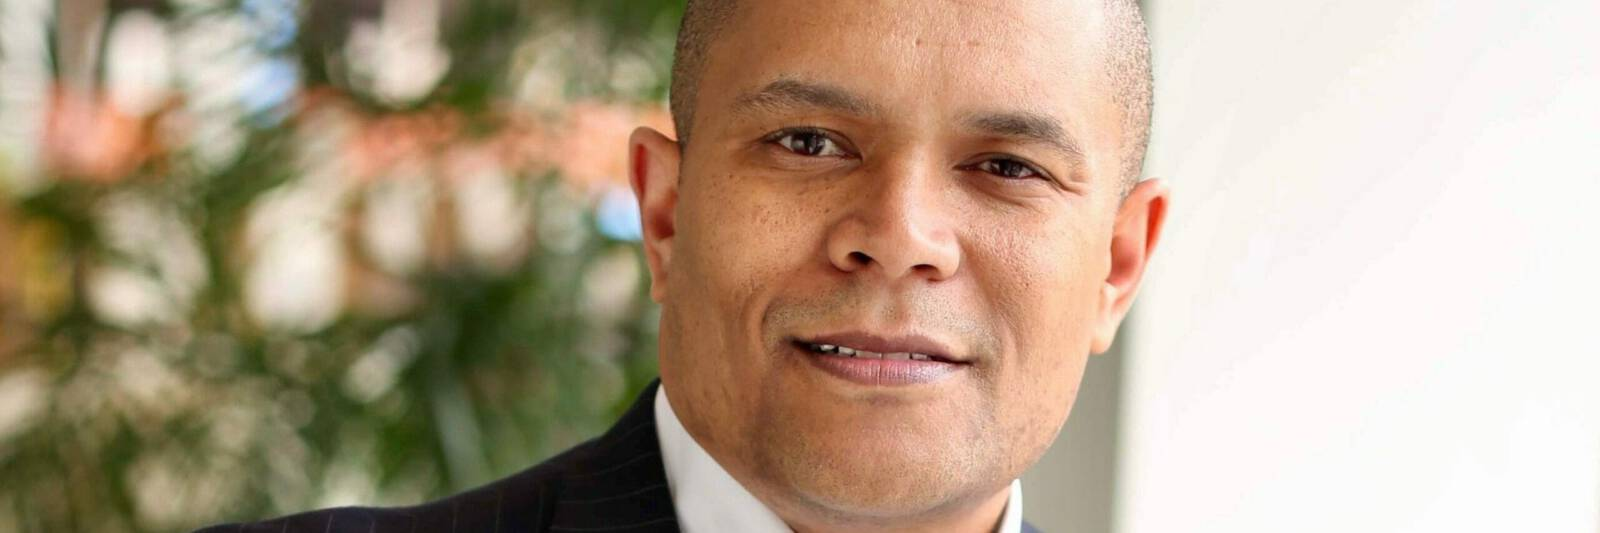 Sheldon Cuffie, American Family Insurance Ciso, Joins Cybersecurity Collaborative Executive